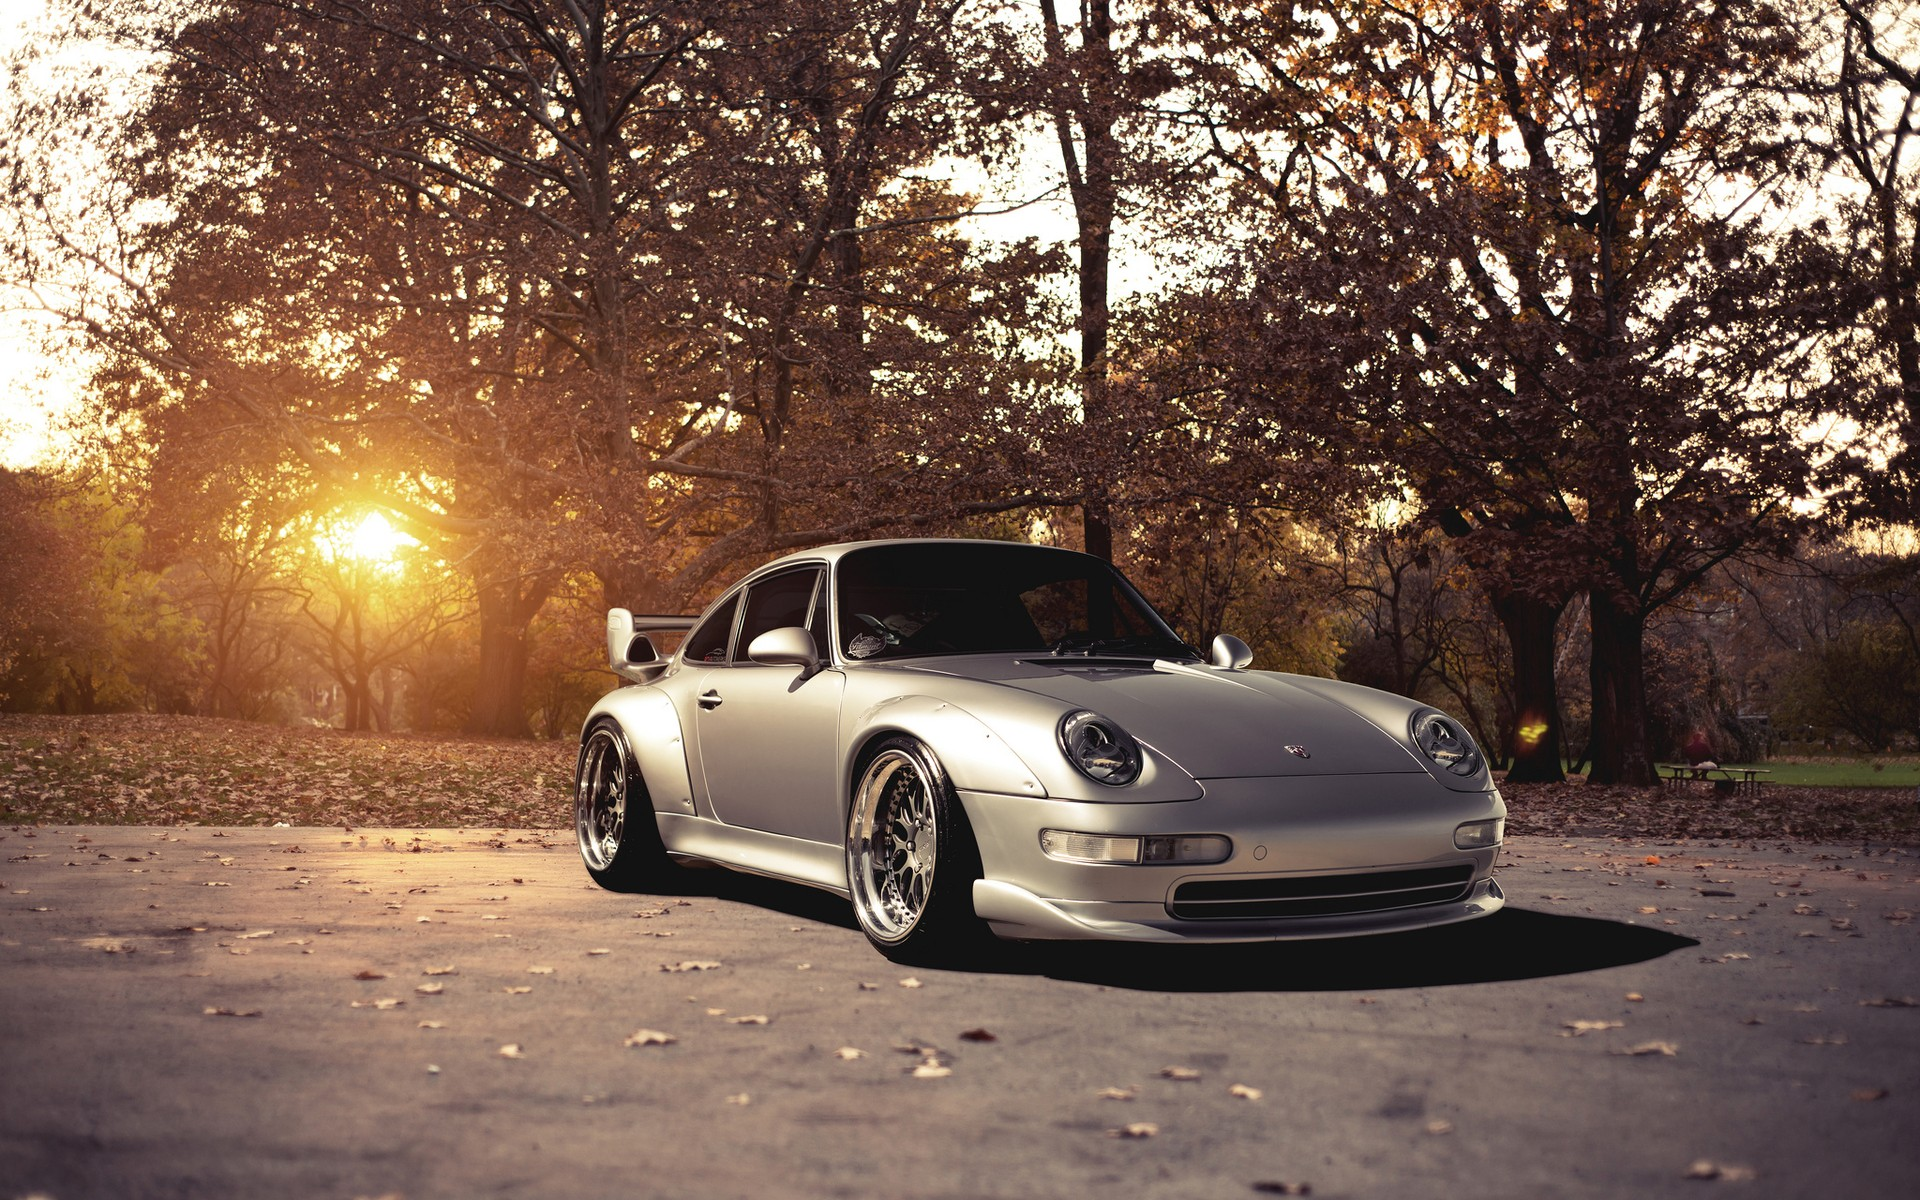 Air Cooled Porsche >> Daily Wallpaper: Porsche 911 GT2 | I Like To Waste My Time